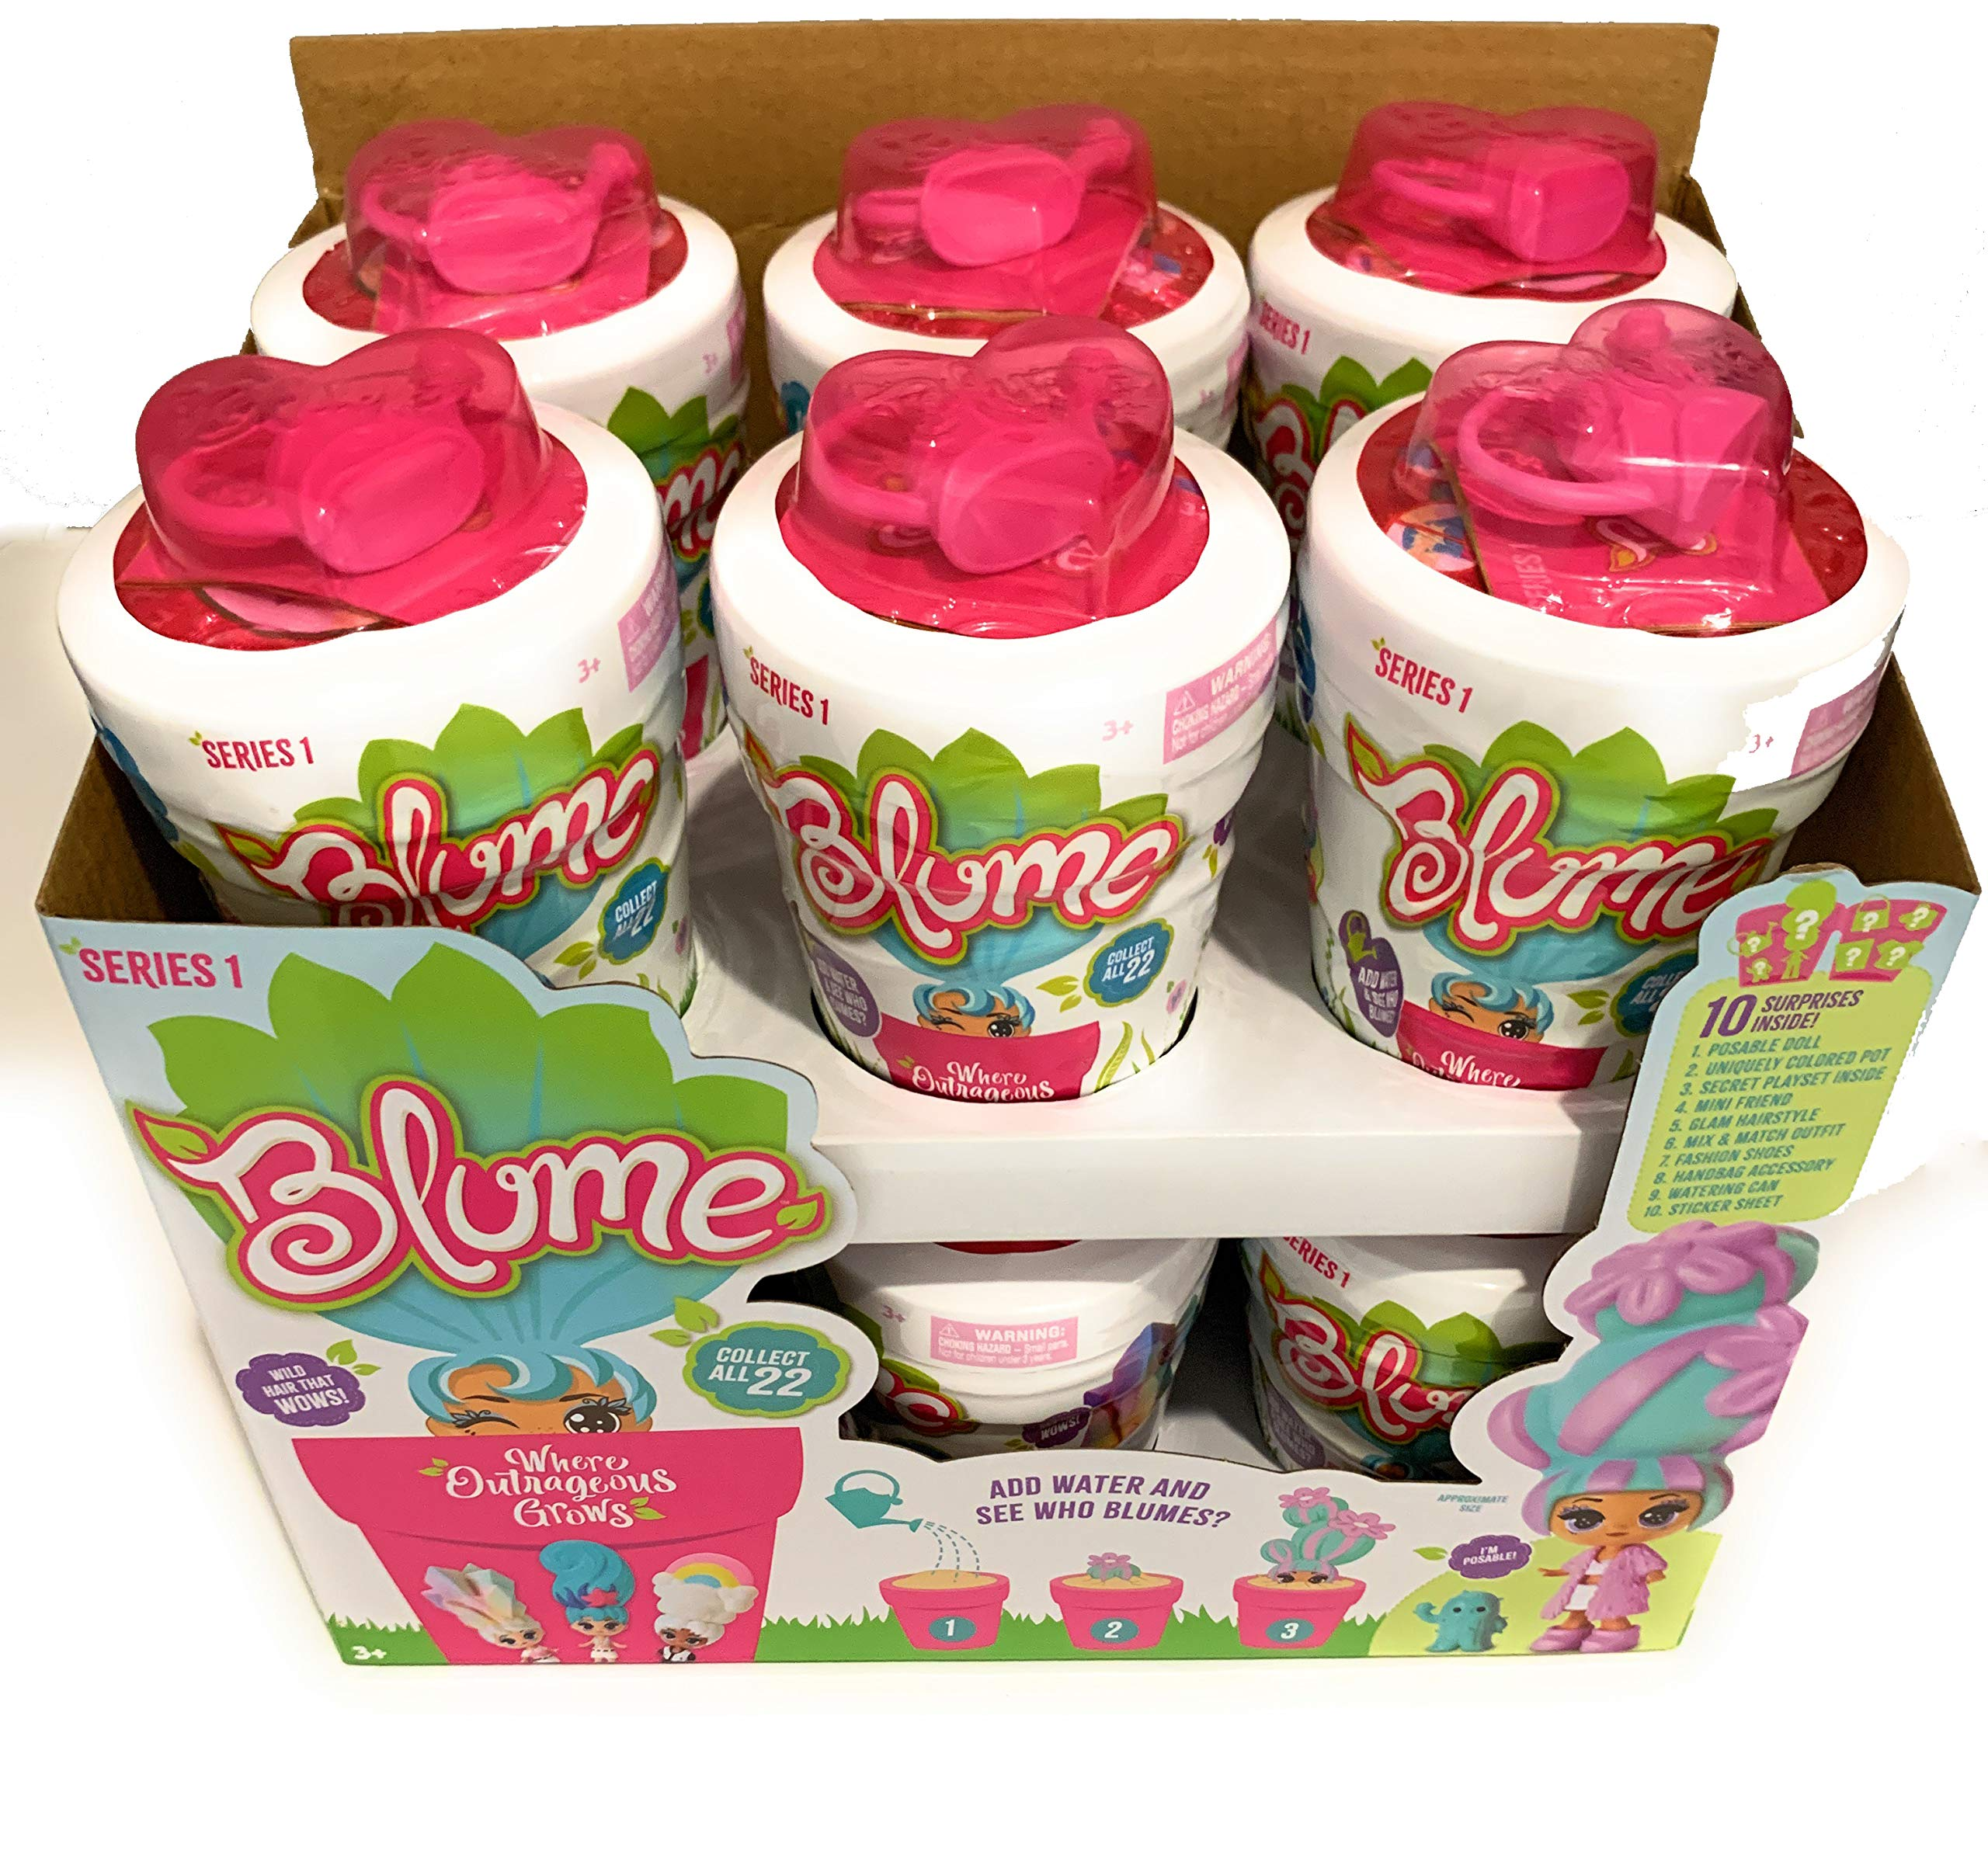 Blume Series 1 - New Friend Will Bloom Before Your Eyes! Full Case of 12